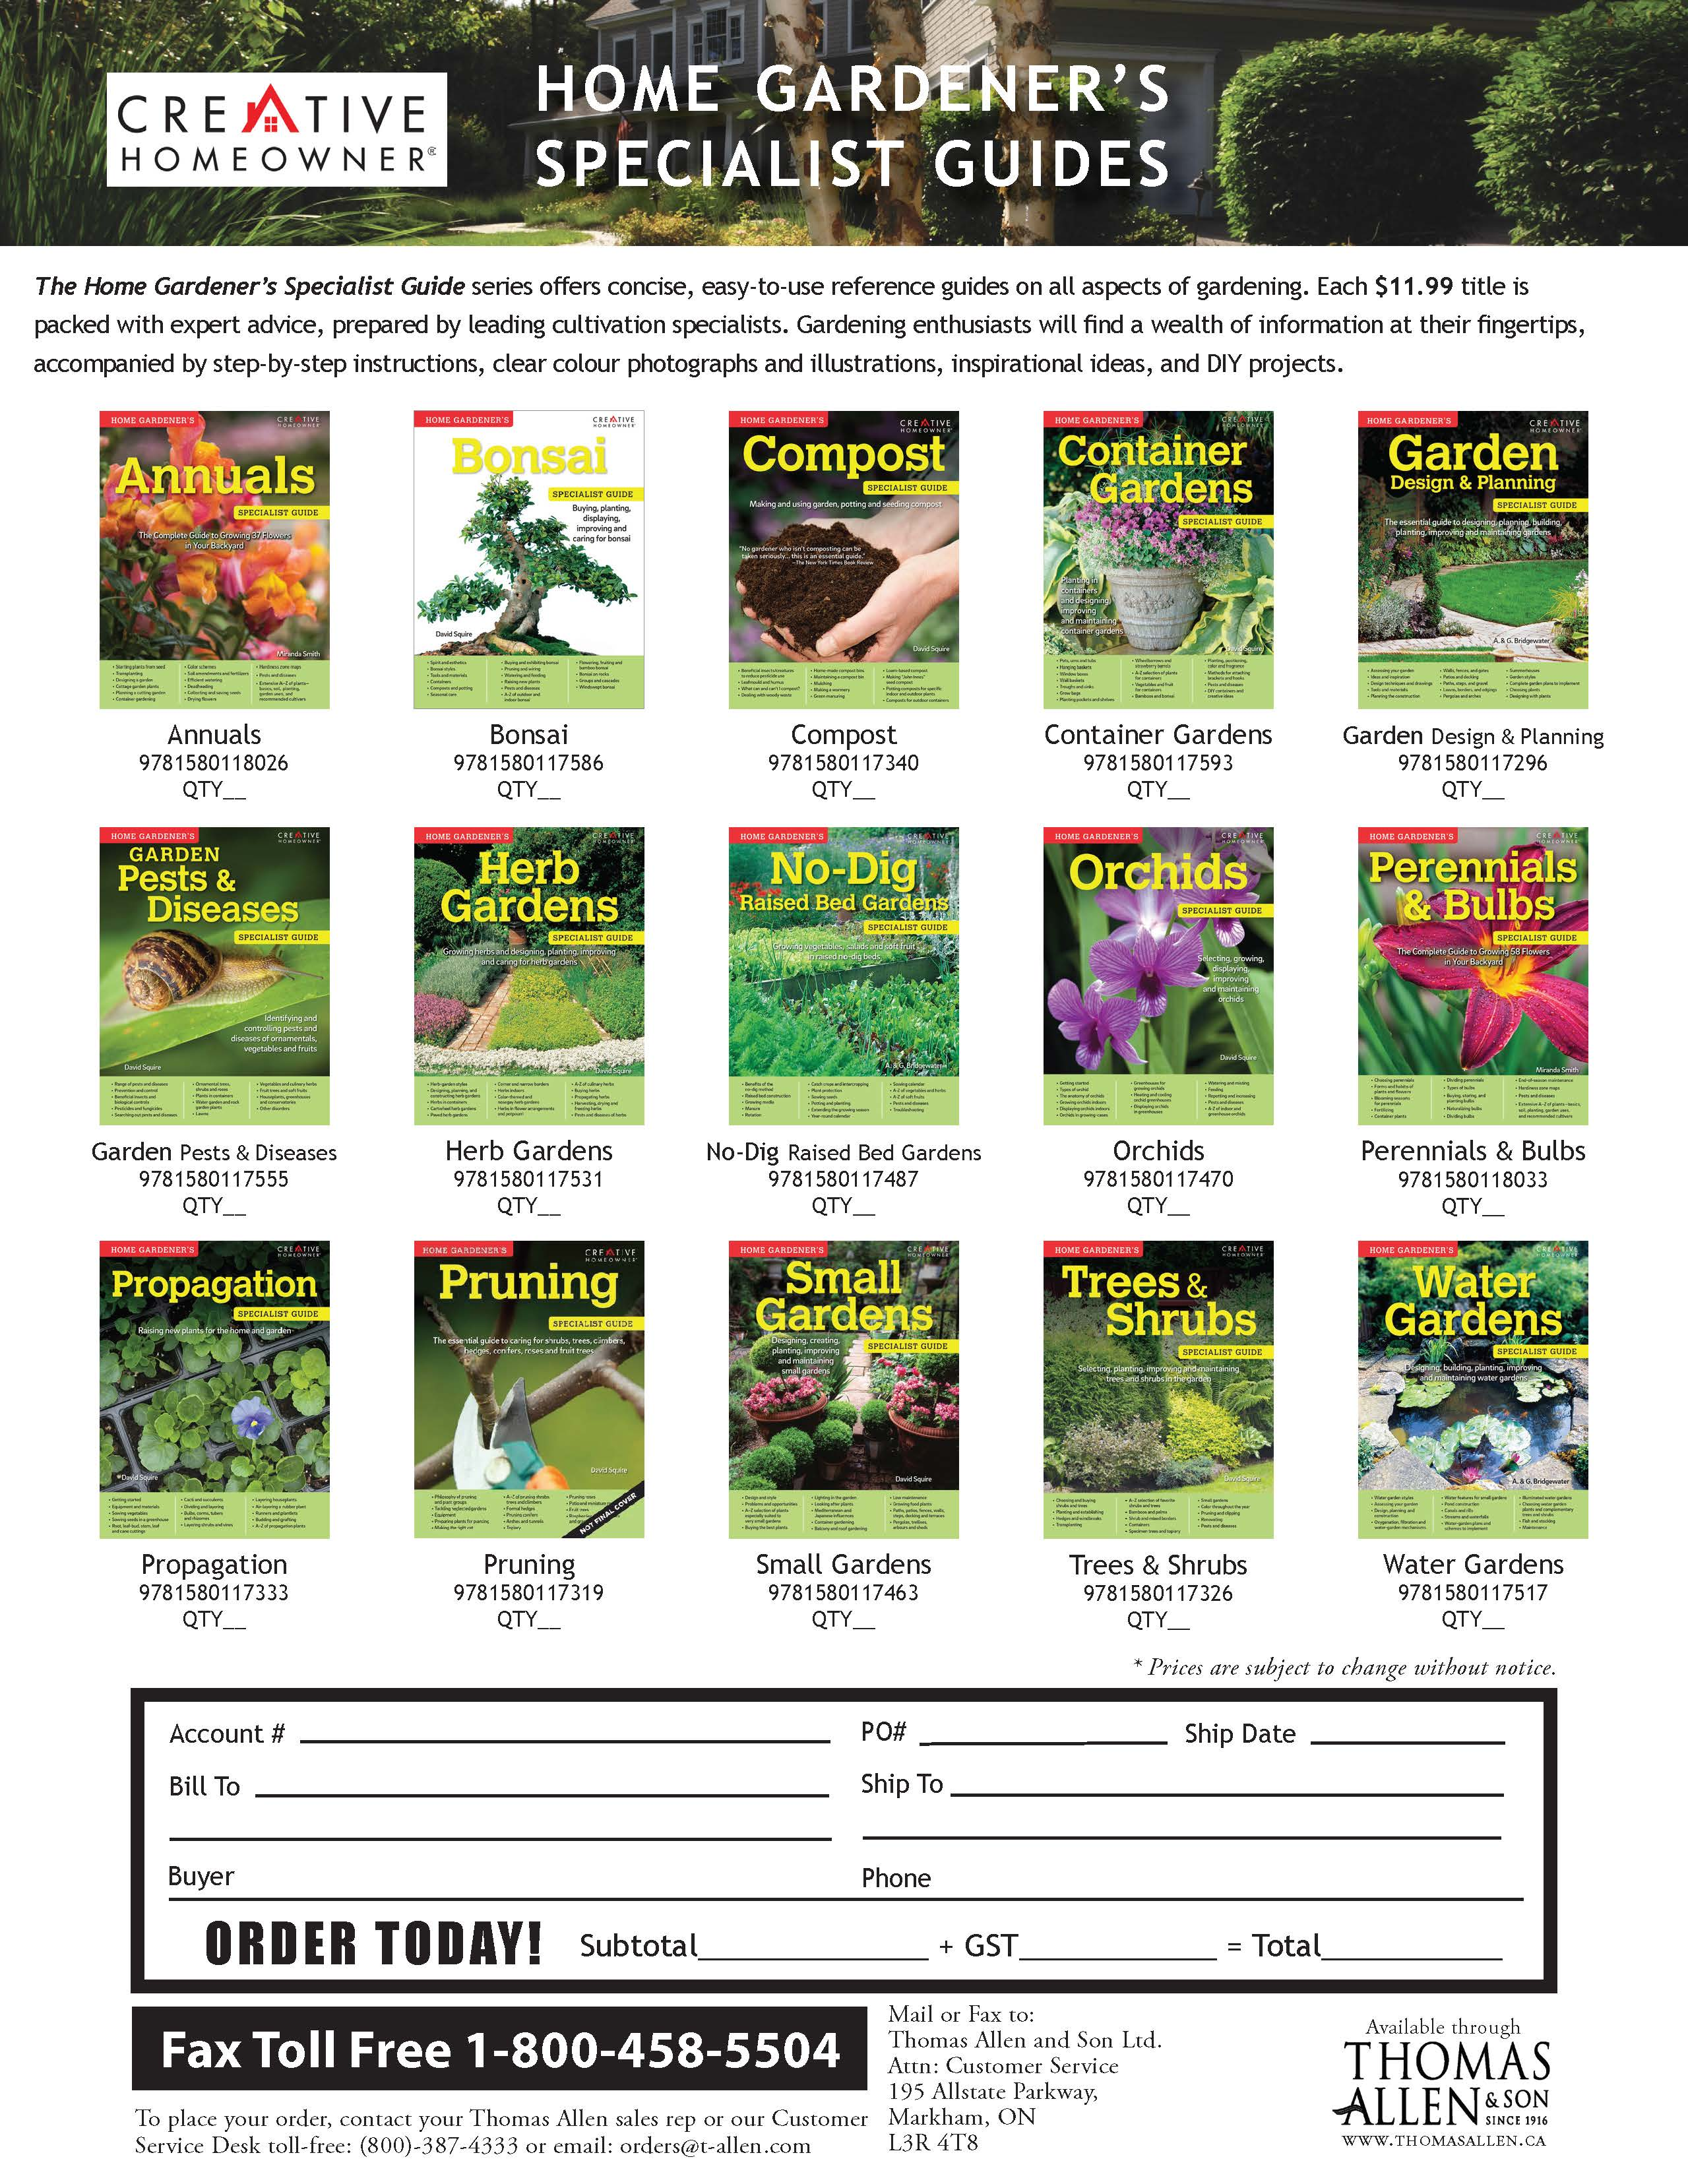 Home Gardener's Specialist Guides